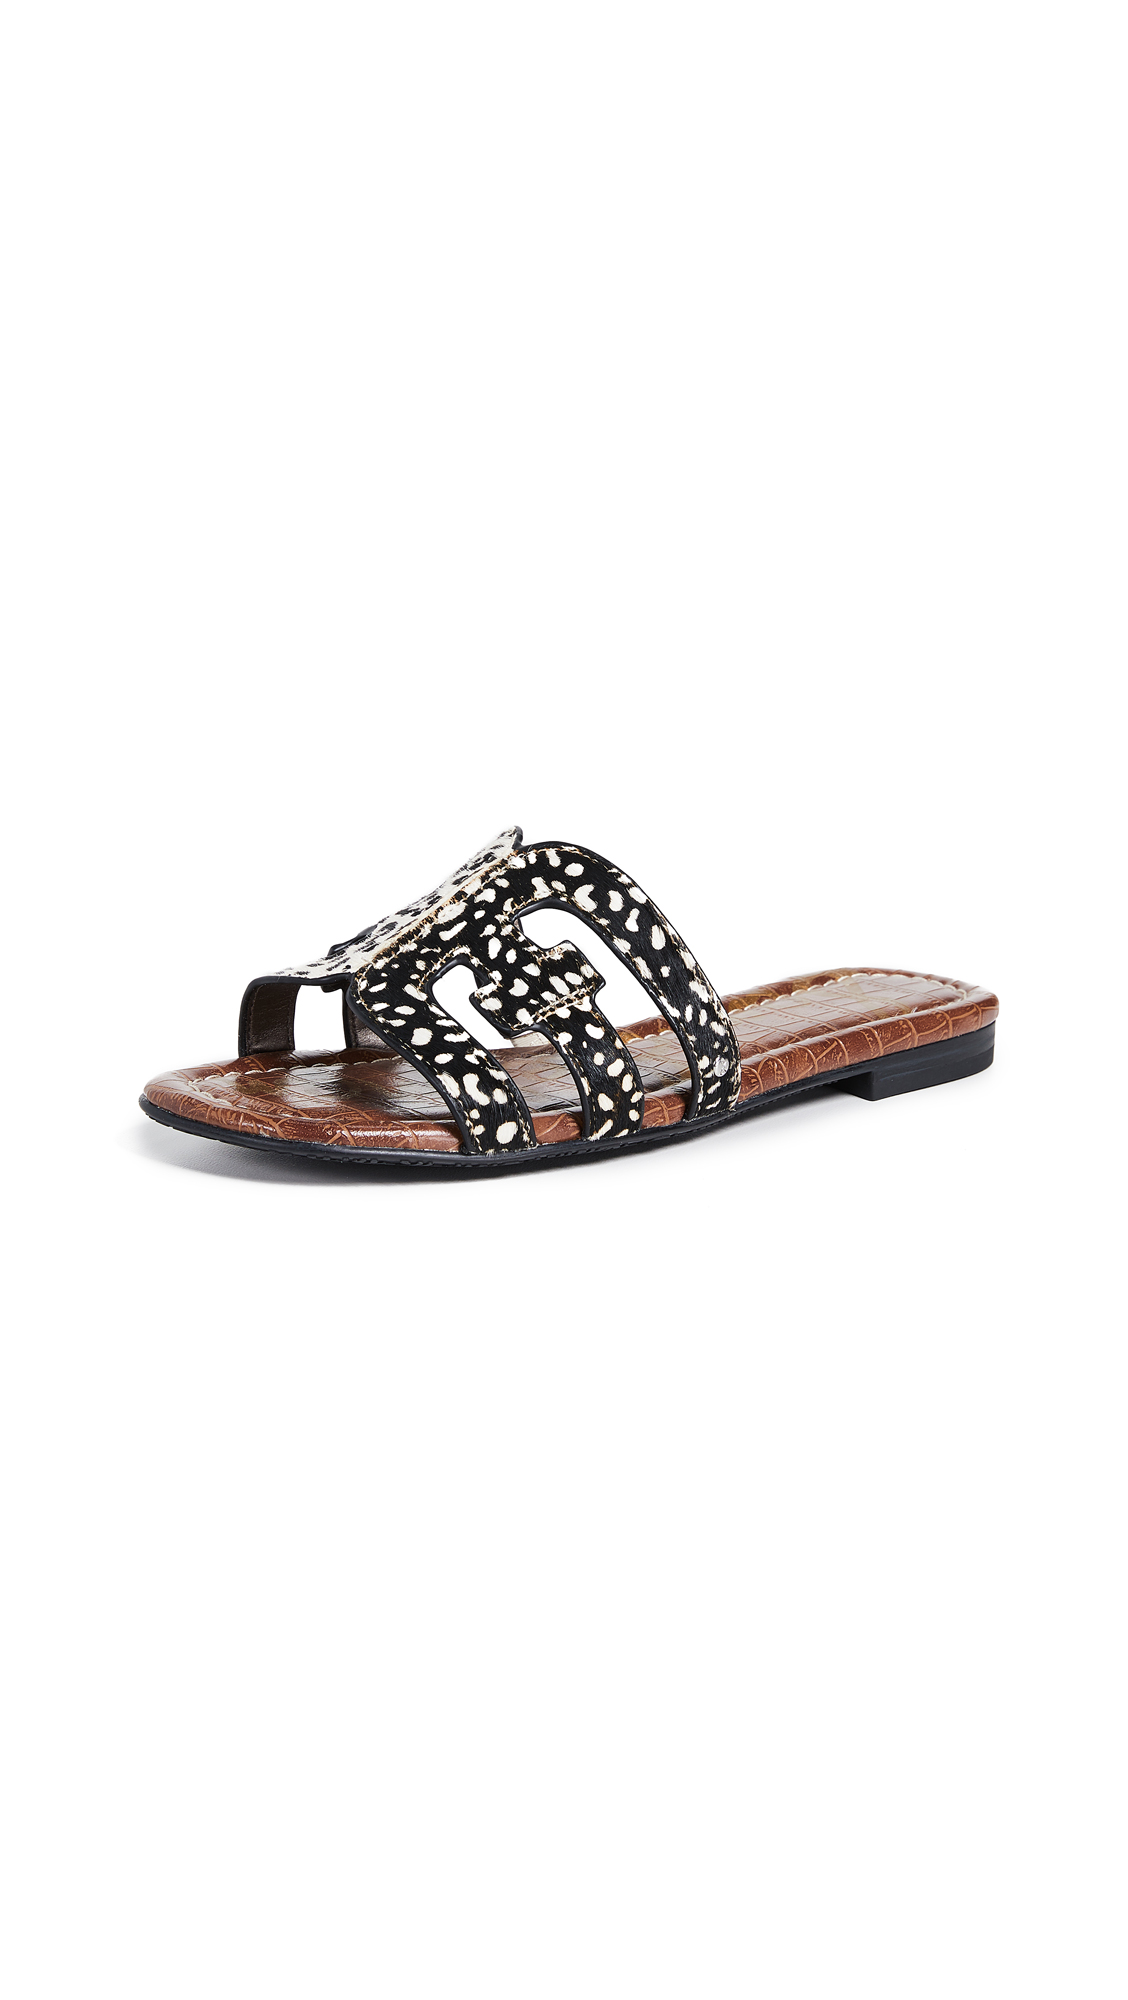 Sam Edelman Bay Slides - Black/Black Ivory